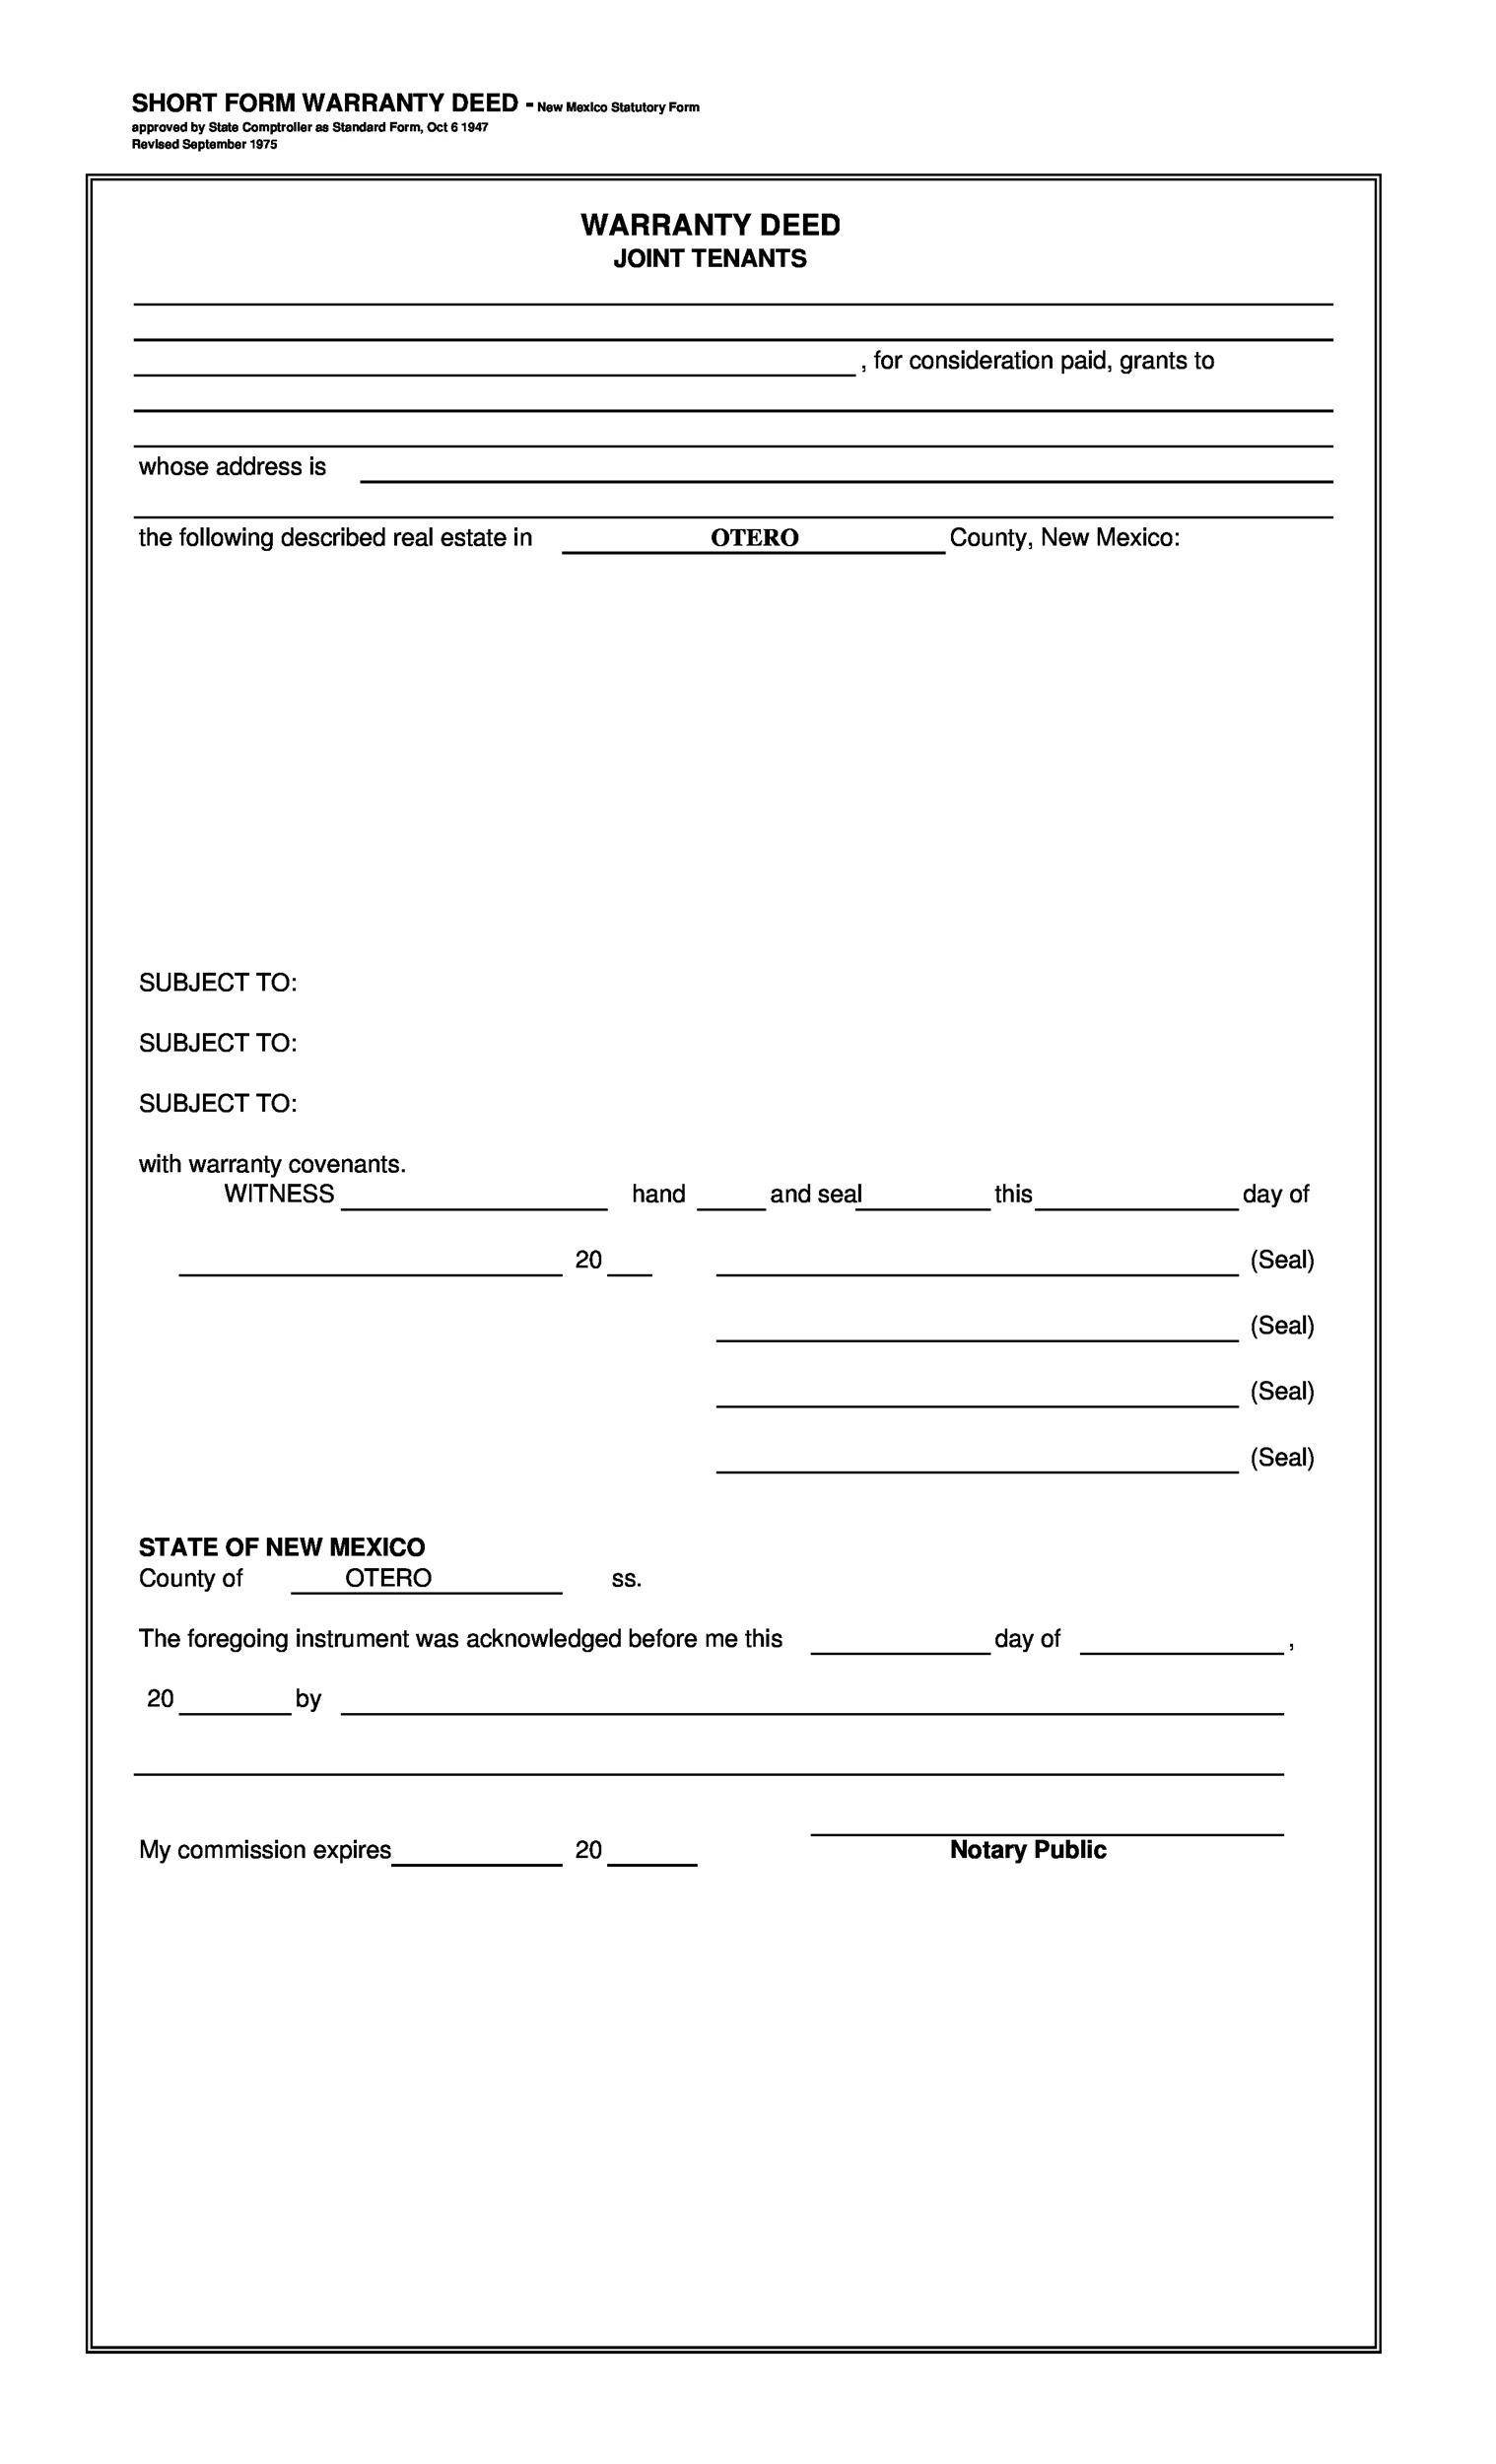 40+ Warranty Deed Templates & Forms (General, Special) - Template Lab